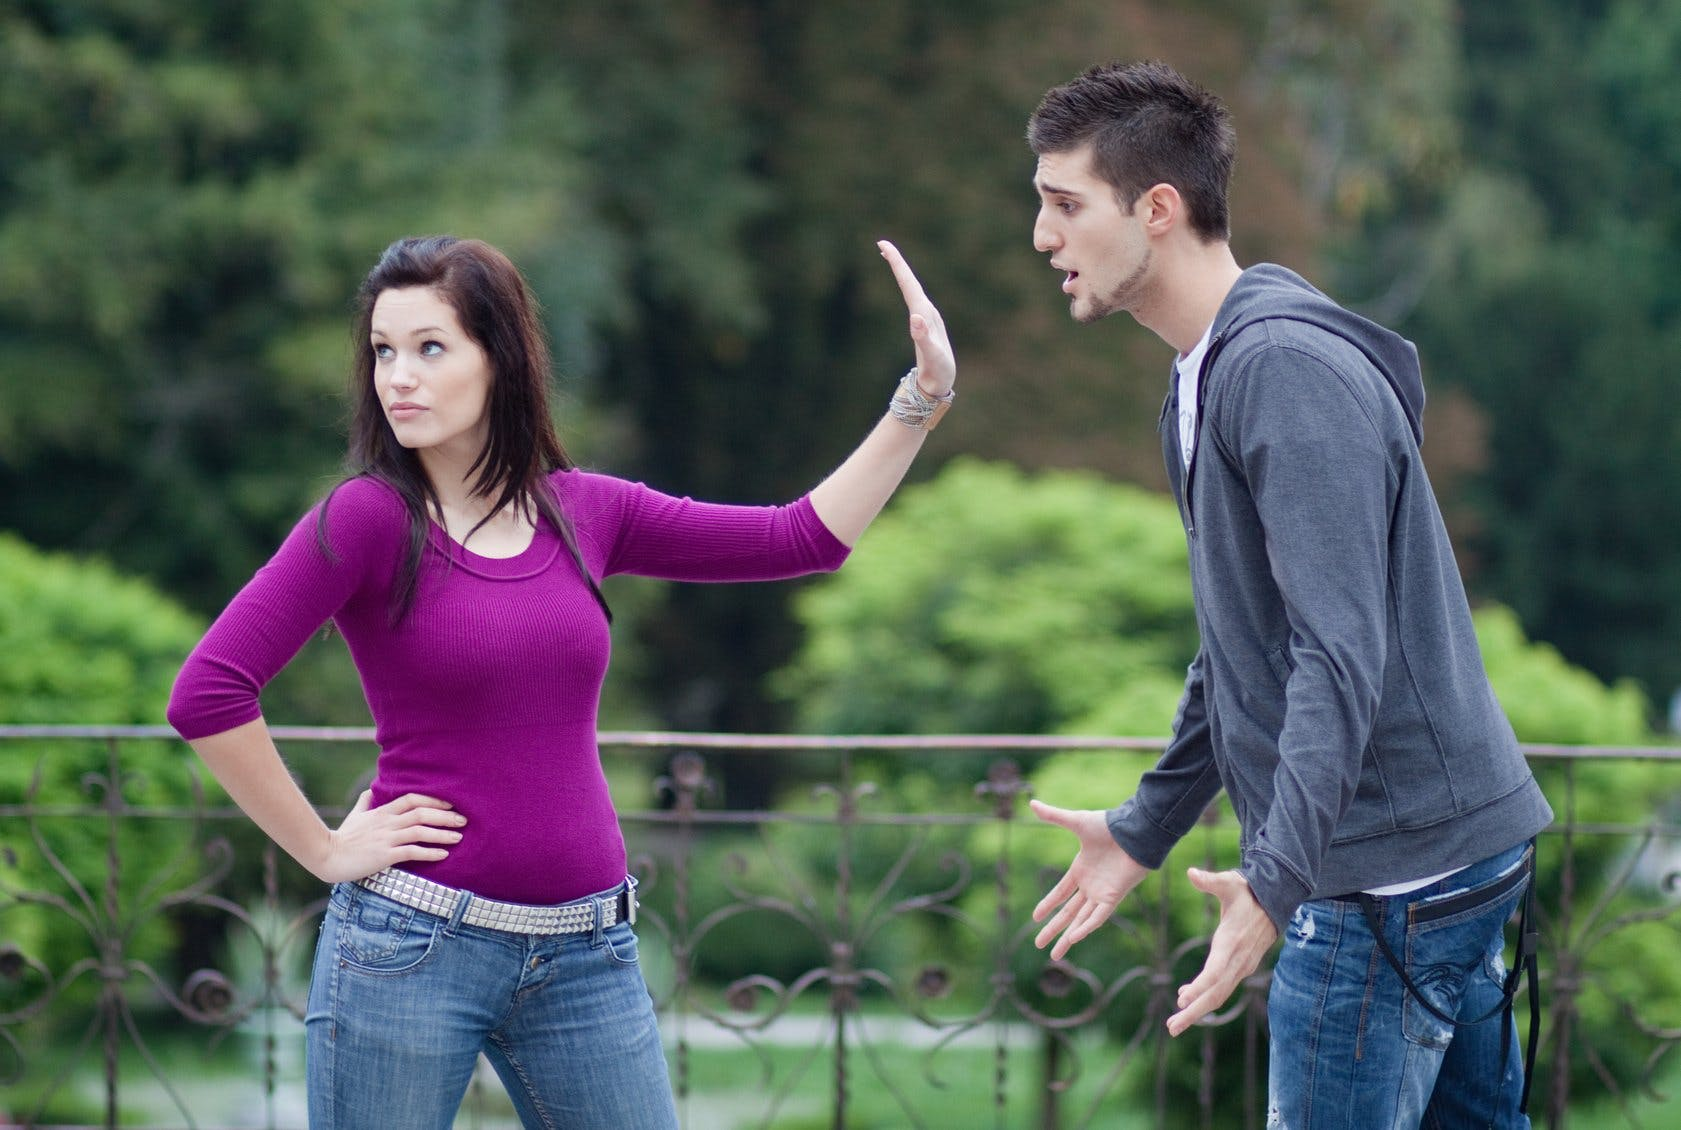 5 Mistakes Men Make That Can Ruin a Relationship